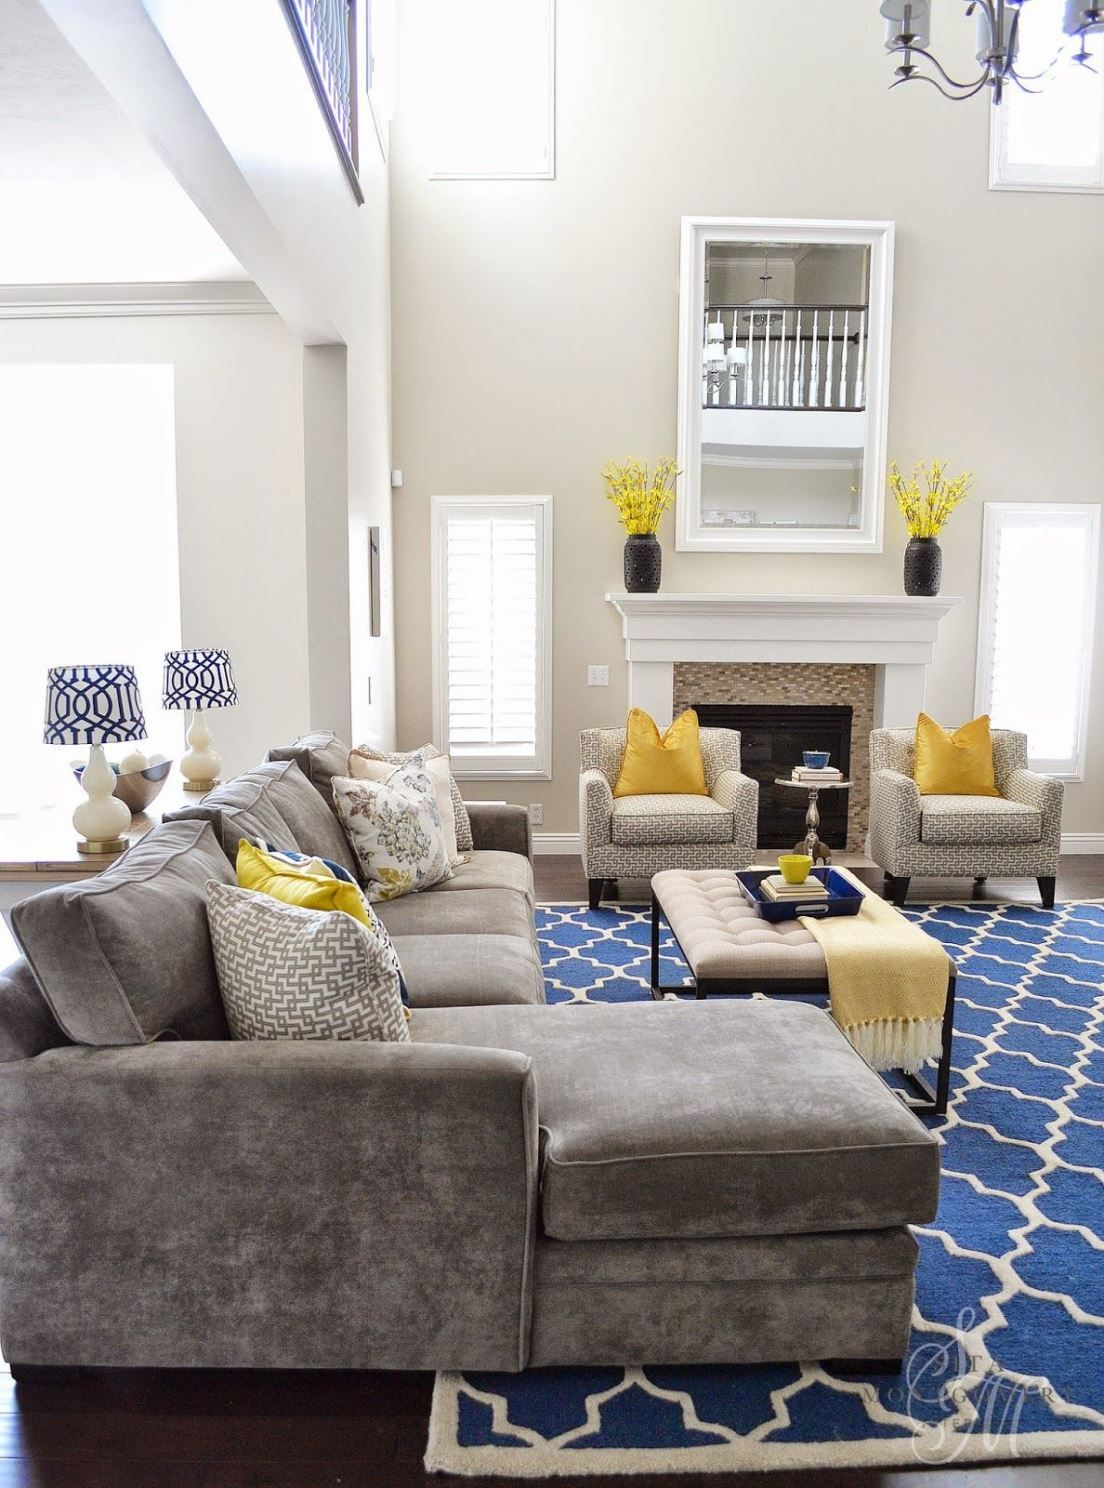 21+ Inspiring Living Room Layout Ideas